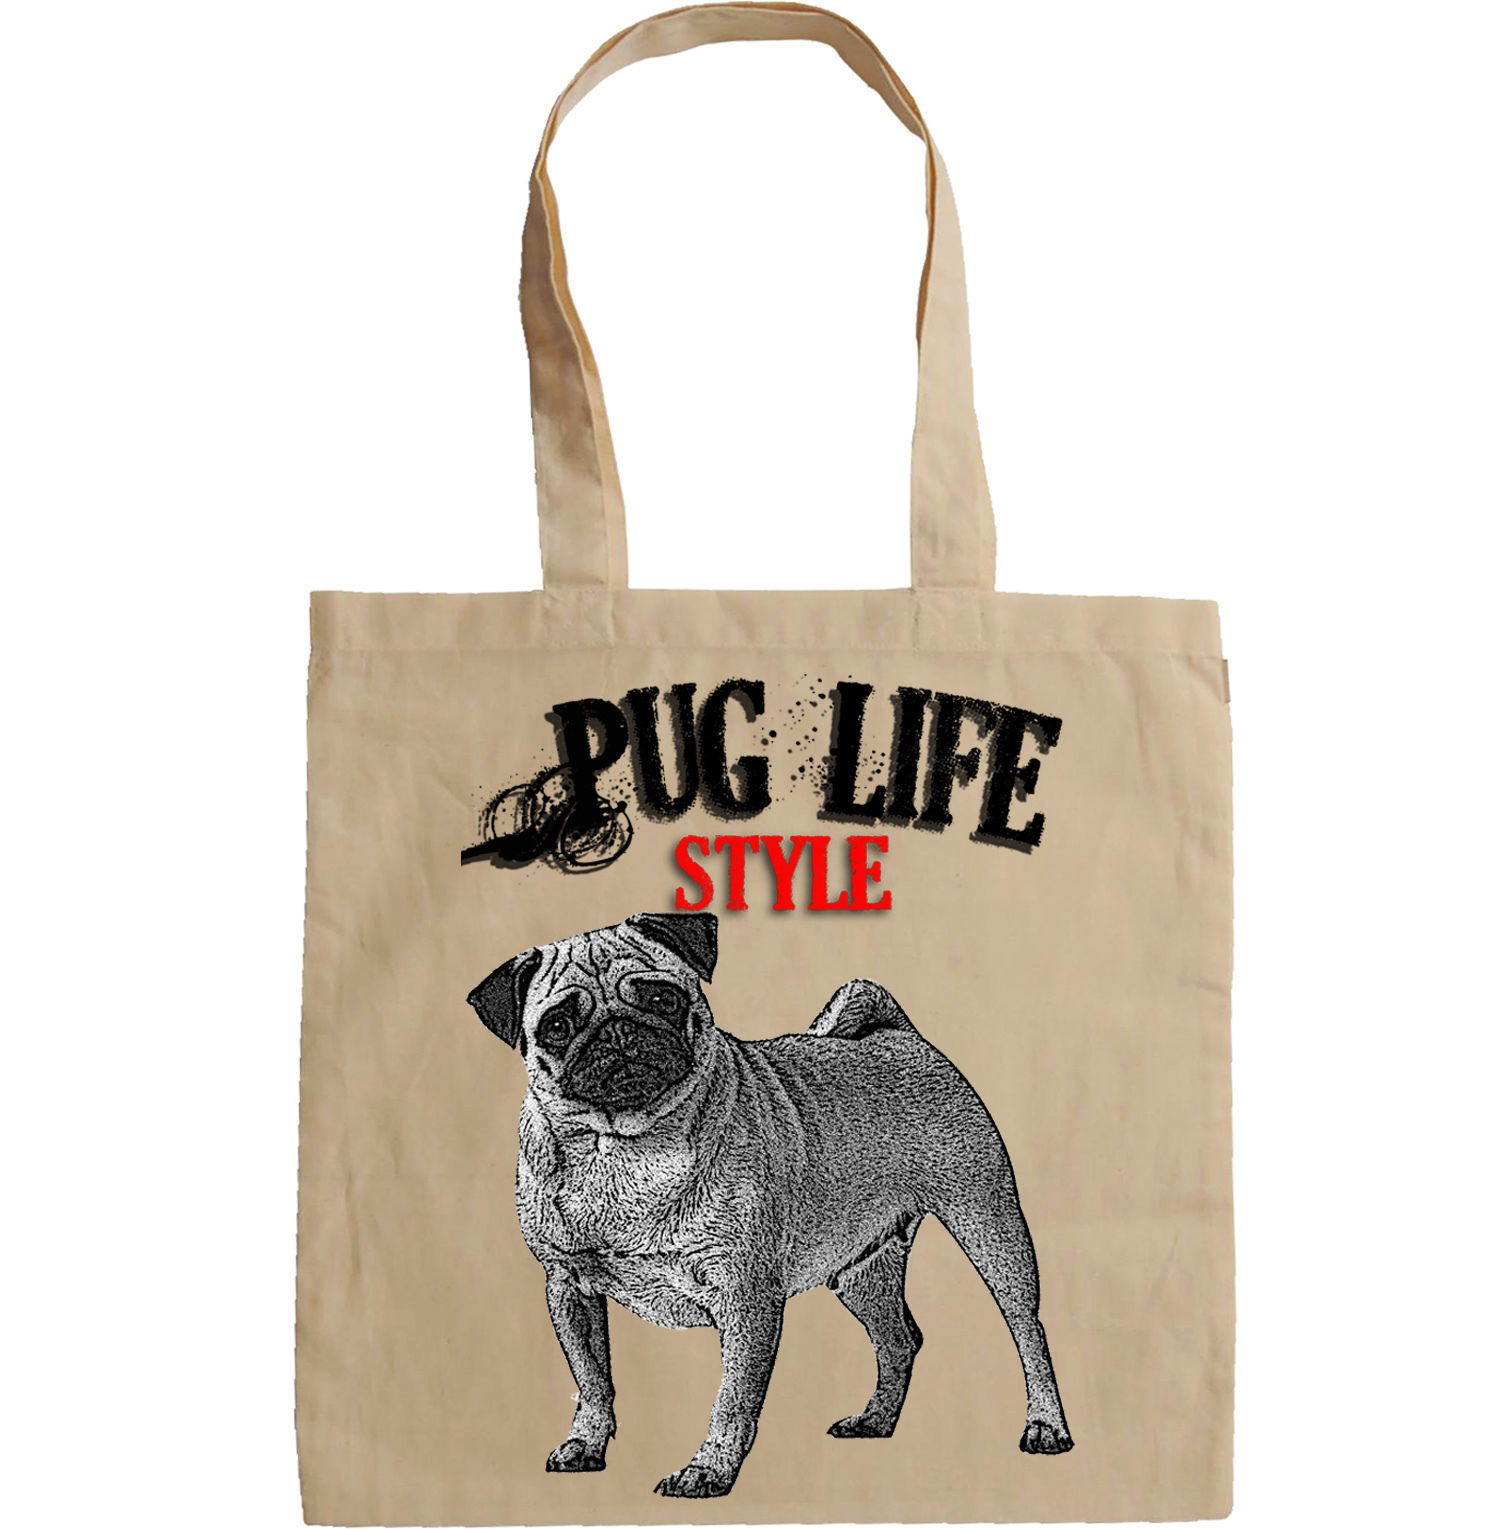 PUG GANGSTER LIFE STYLE - NEW AMAZING GRAPHIC HAND BAG/TOTE BAG